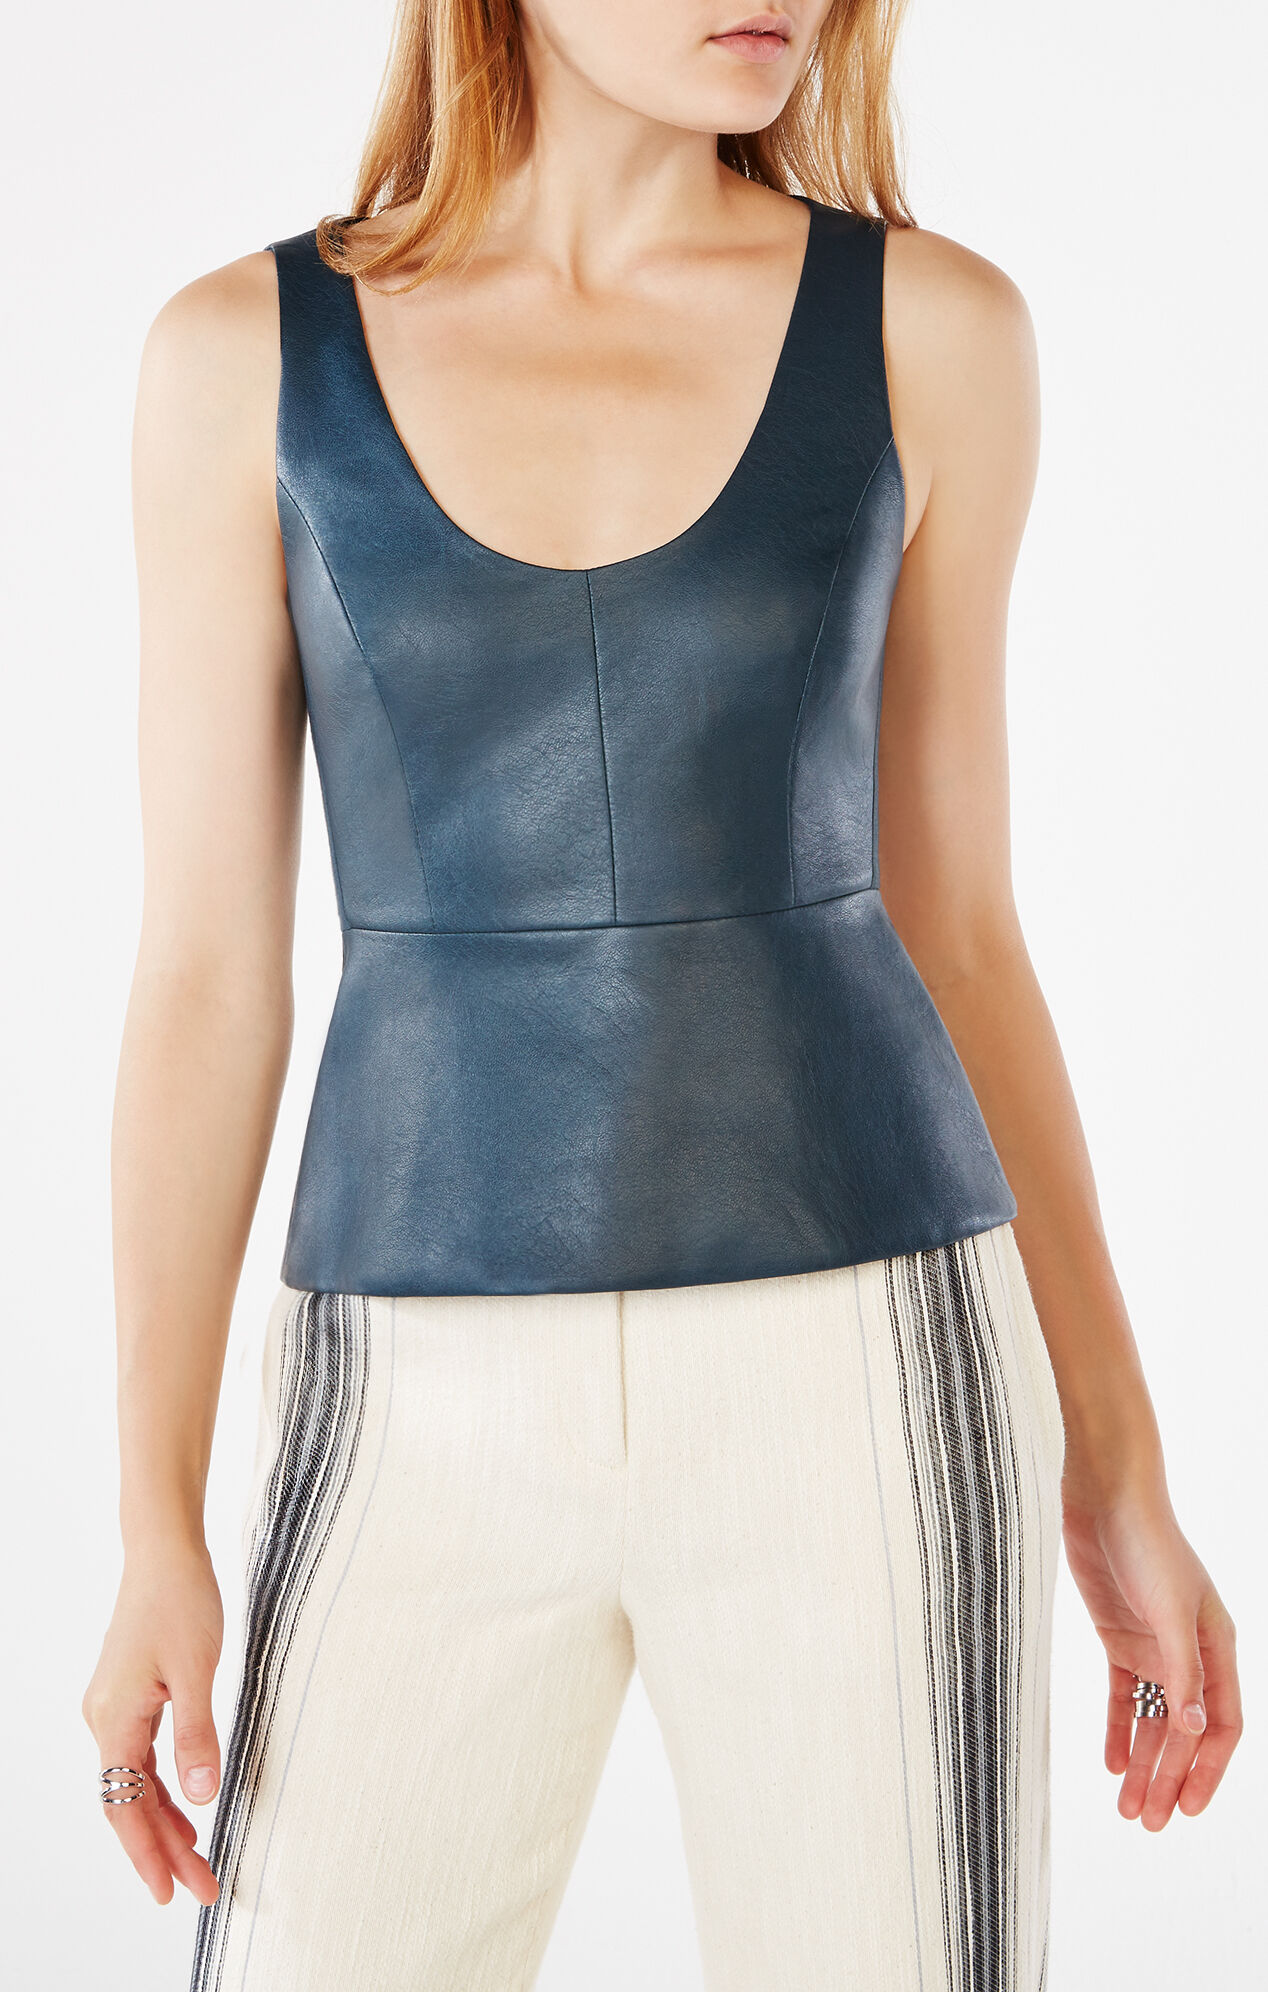 Shop womens peplum tops at dexterminduwi.ga Free Shipping and Free Returns for Loyallists or Any Order Over $! Skip to Content. Embroidered Faux Leather Peplum Top. Orig. $ Now $ (56% OFF) Ted Baker. Bubbl Ruffled Peplum Top. $ BCBGMAXAZRIA. Tori Faux-Leather Front Peplum Top.